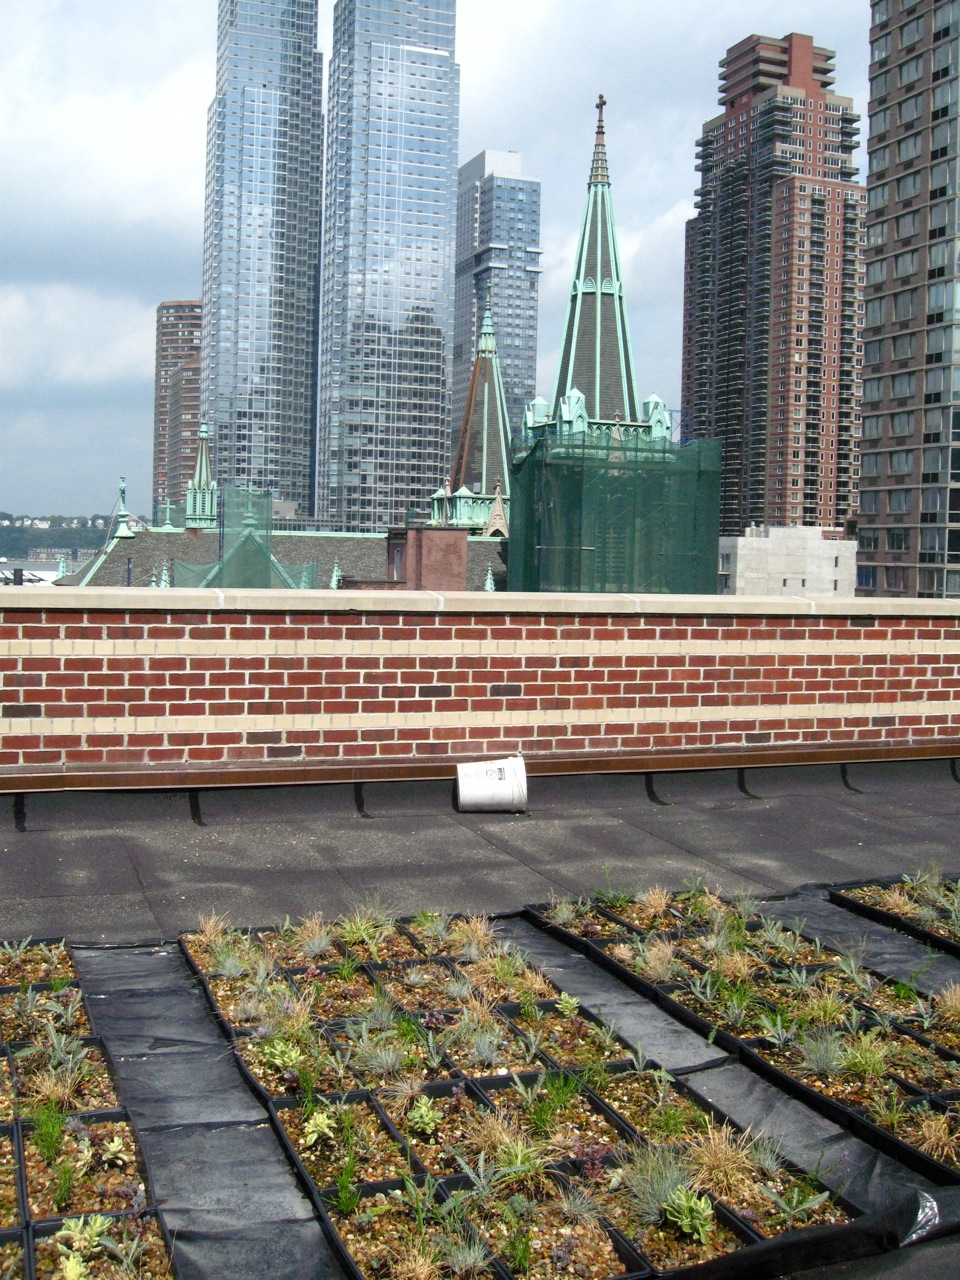 Seeding the City, modules in midtown